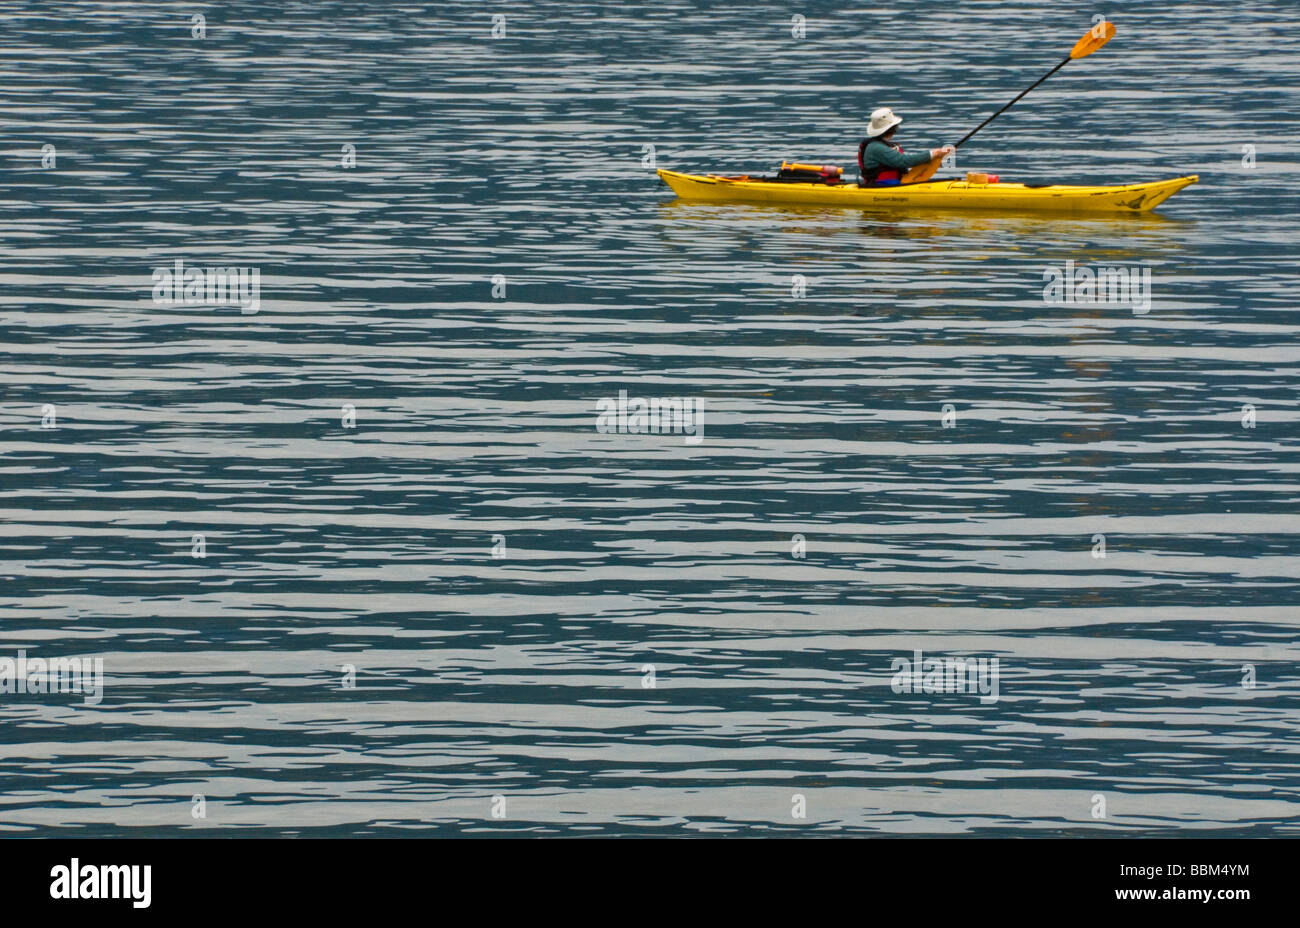 Kayak dans le Bras Indian North Vancouver Photo Stock